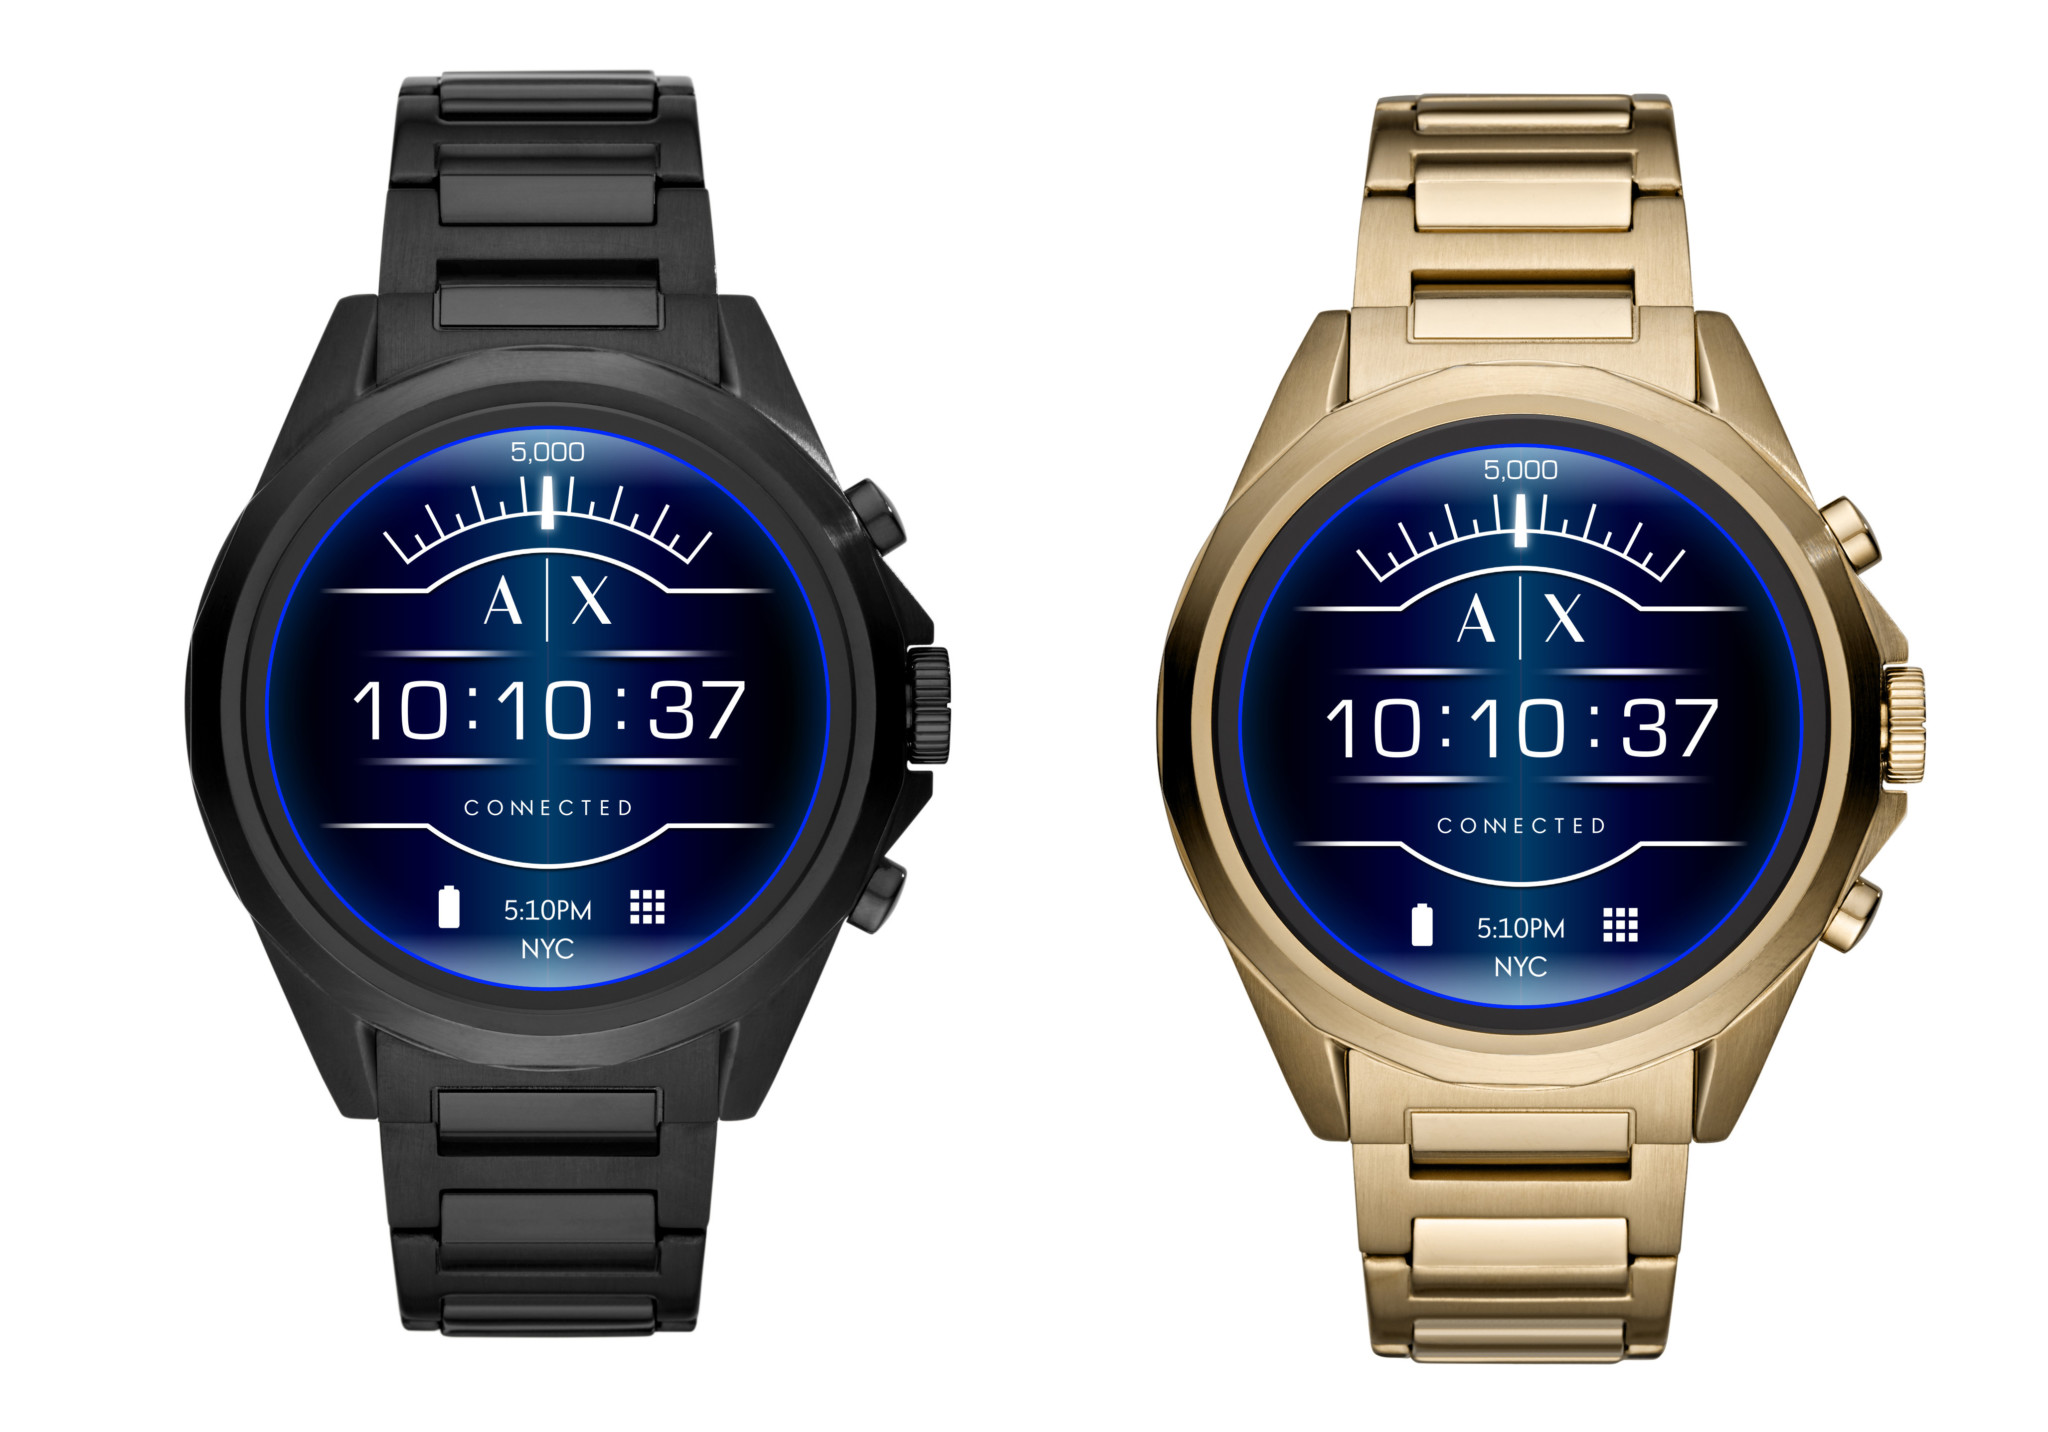 9f6e8e97f Fossil extends its smartwatch line to include A|X Armani Exchange collection